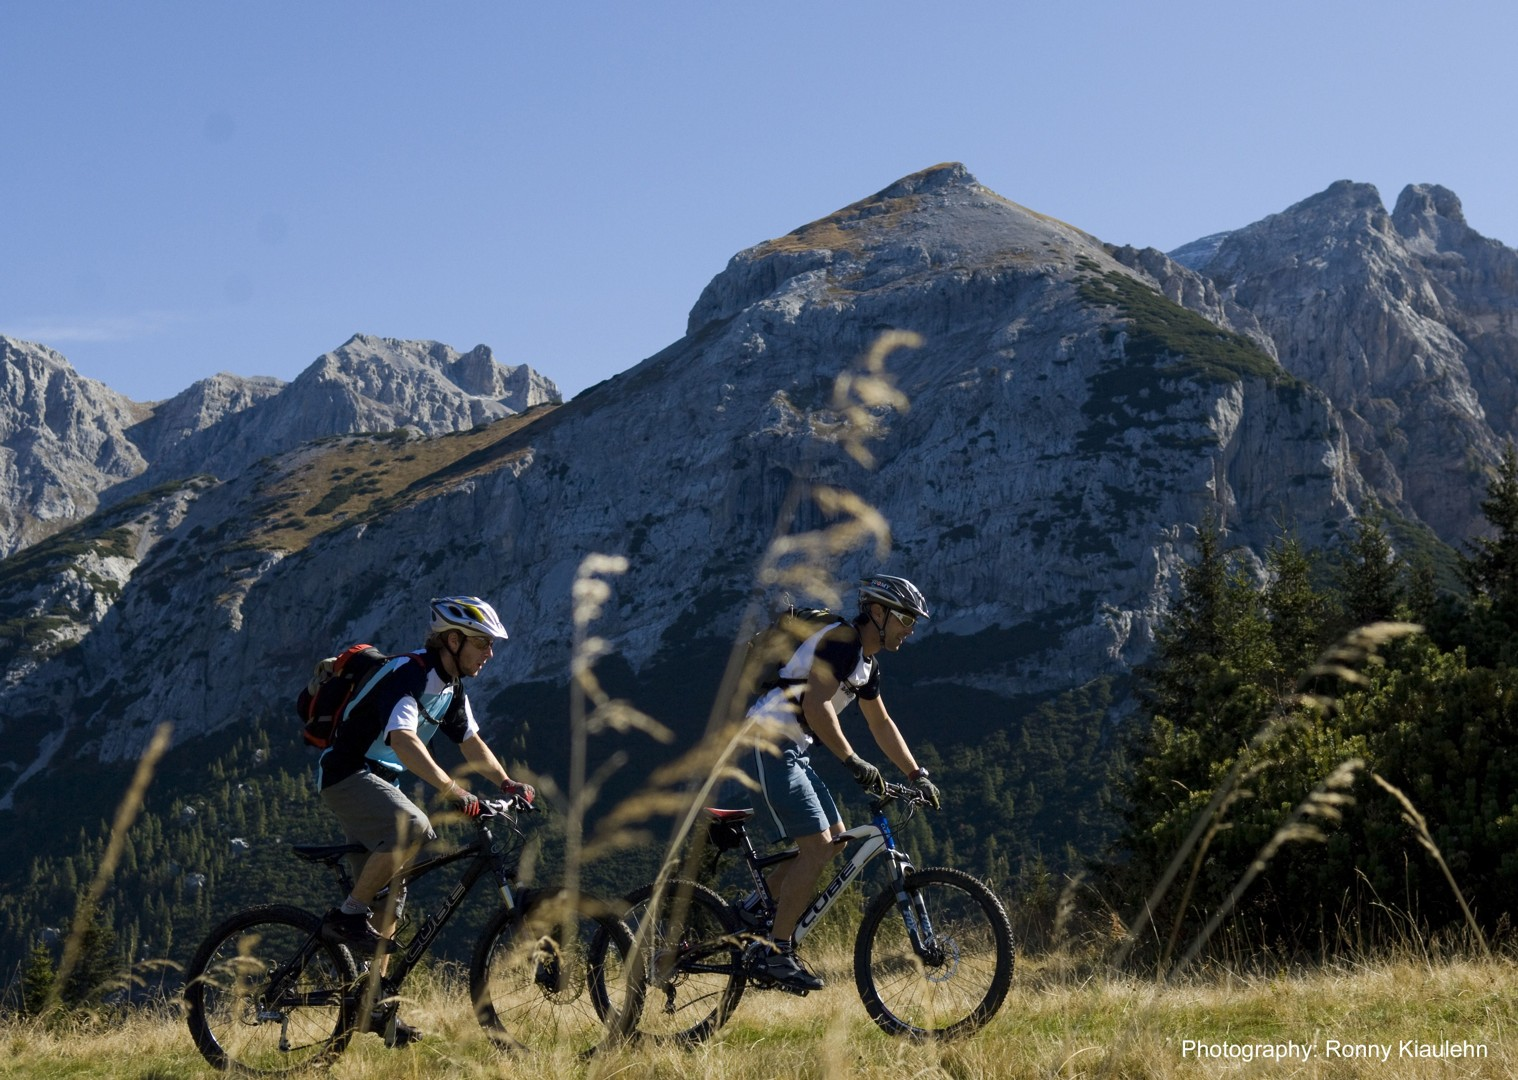 dolomites6.jpg - Italy - Dolomites of Brenta - Guided Mountain Bike Holiday - Italia Mountain Biking